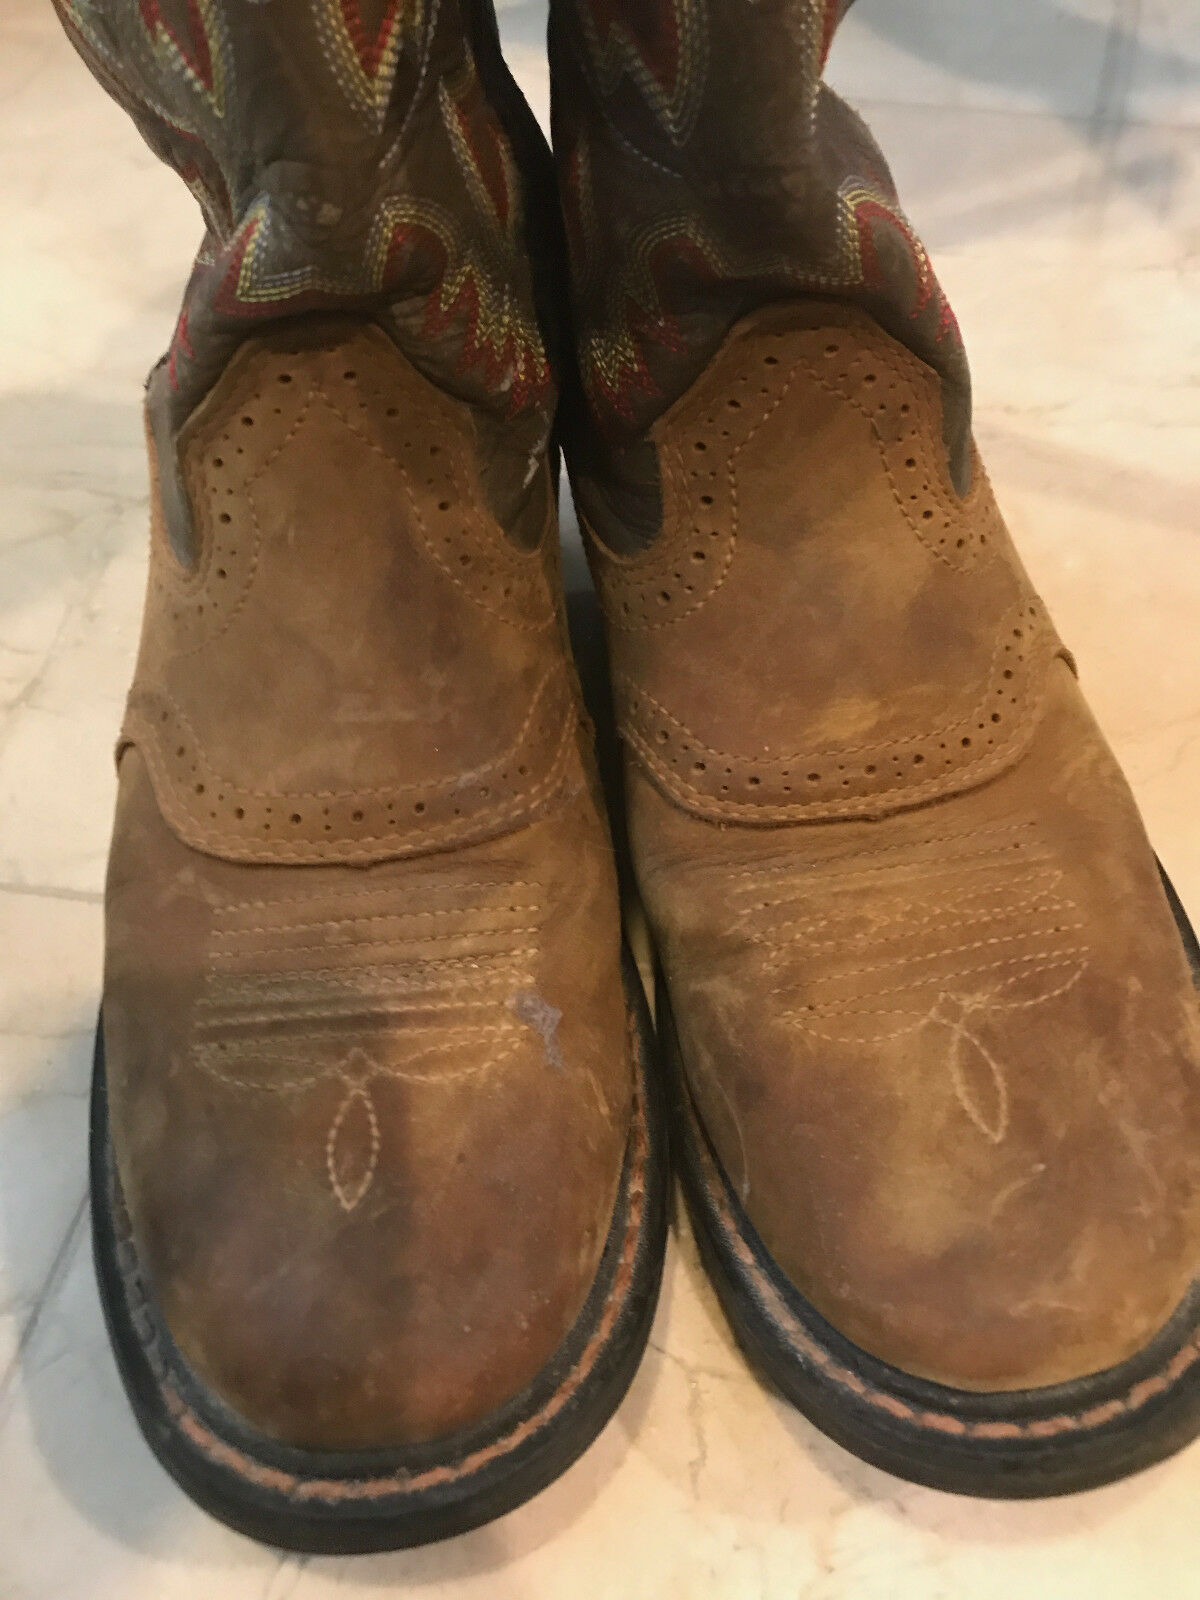 Preowned 4 ARIAT Brown Leather  Boots SIZE 4 Preowned  !!!  SG f2204d